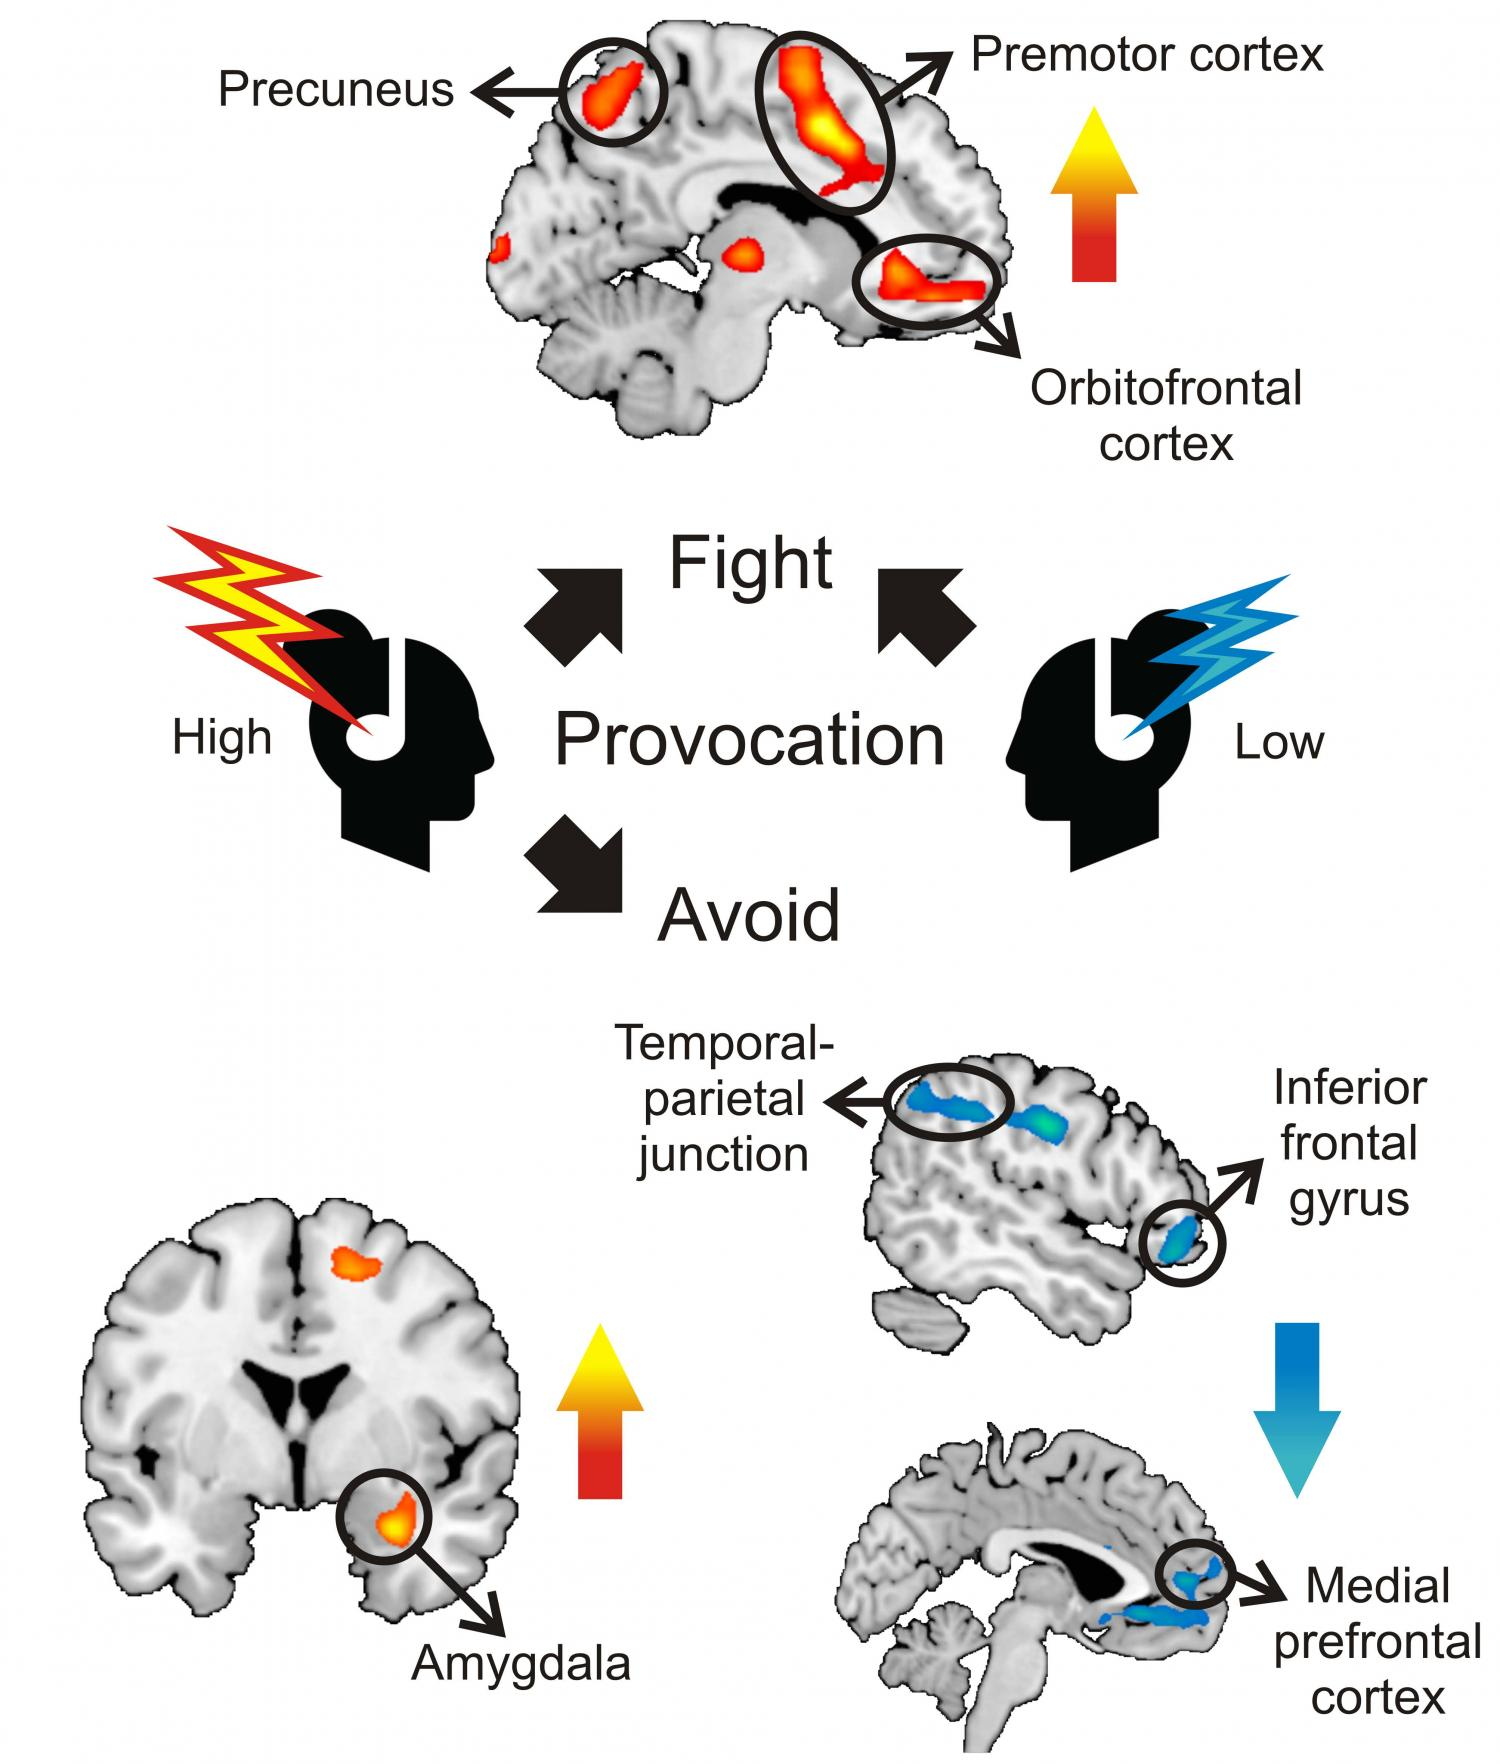 diagram of hiv aids the brain s fight and flight responses to social threat diagram of parts of toilet